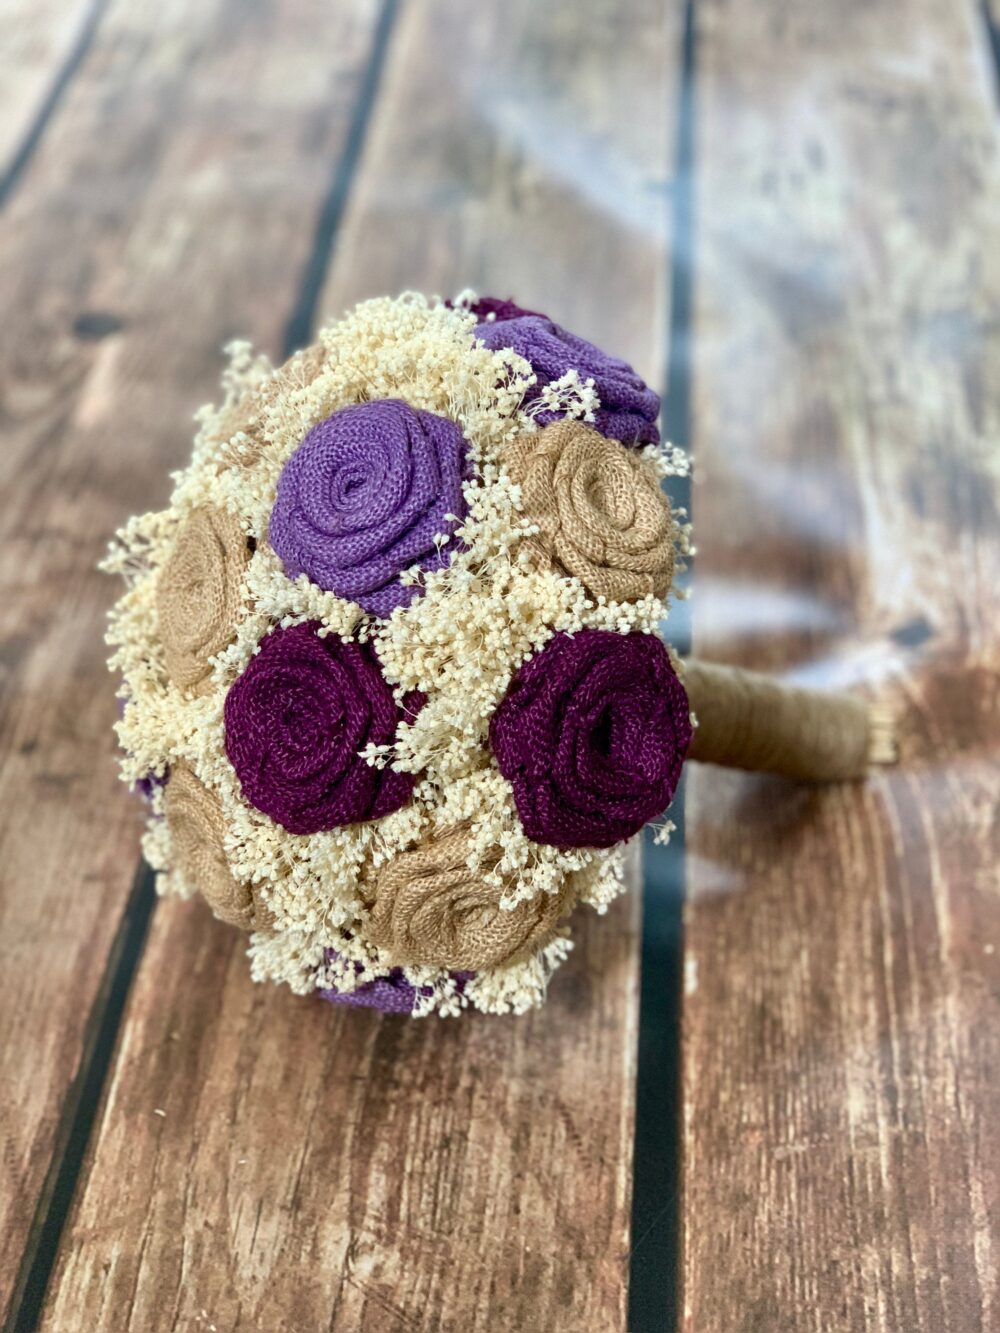 Rustic Burlap Wedding Bouquet With Handmade Burlap Flowers | Choose Size Bouquet, Purple Bridesmaid Bouquet